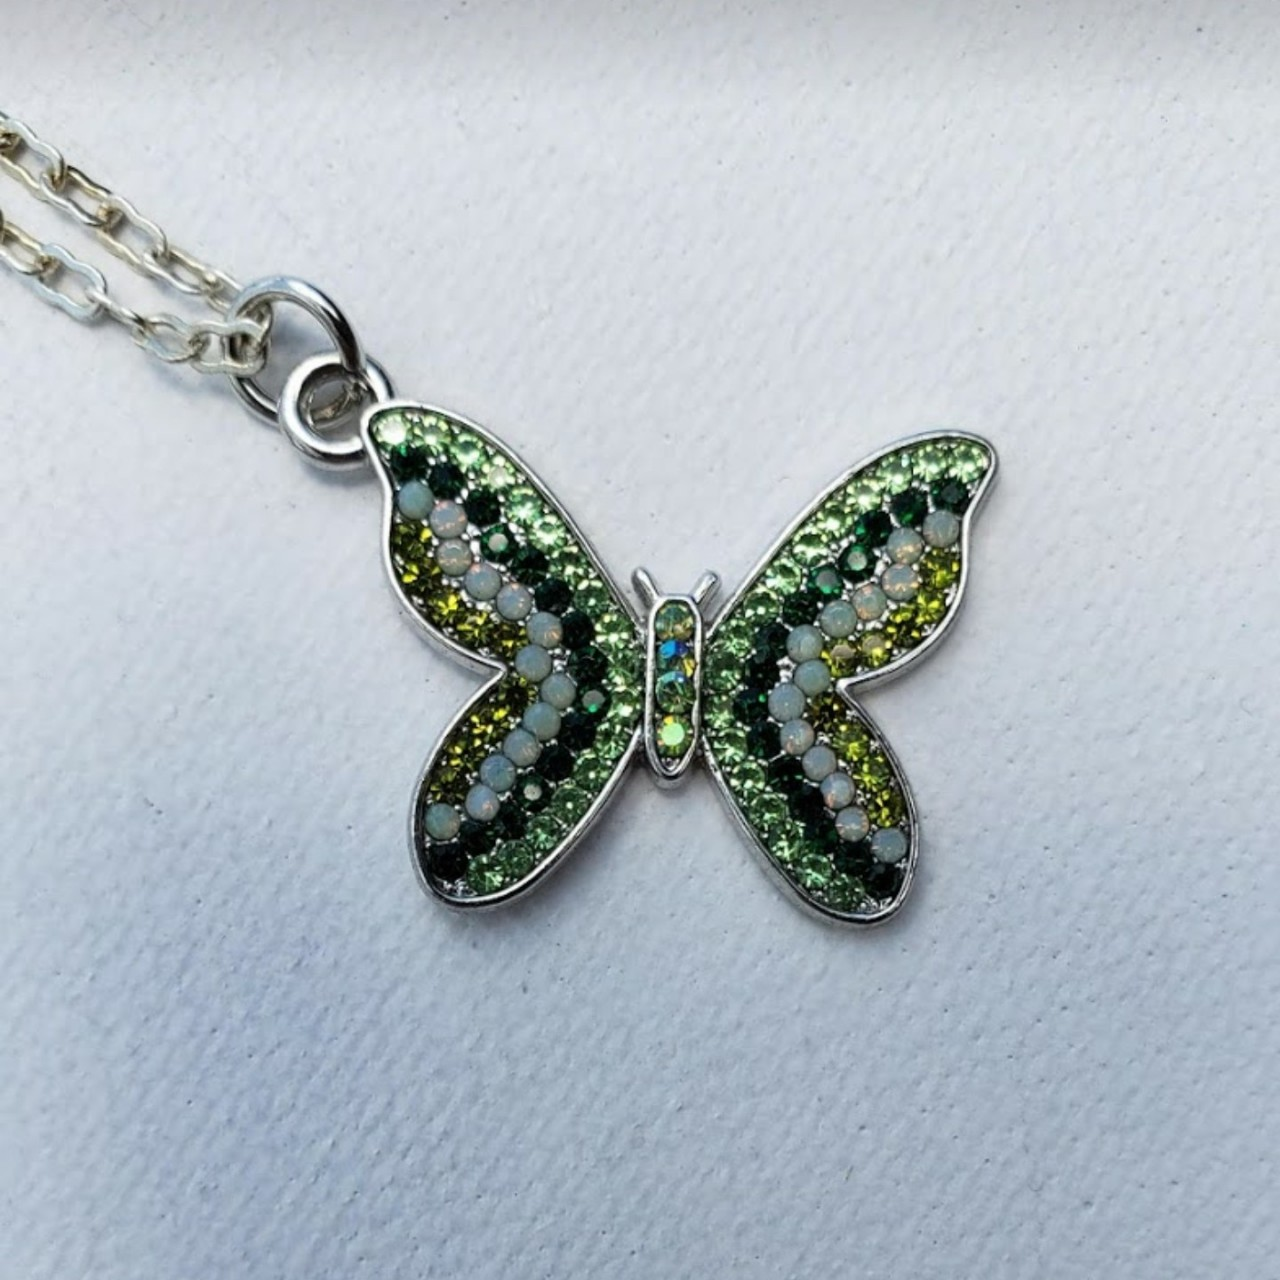 Product Image 1 - Butterfly Necklace. Silver look with